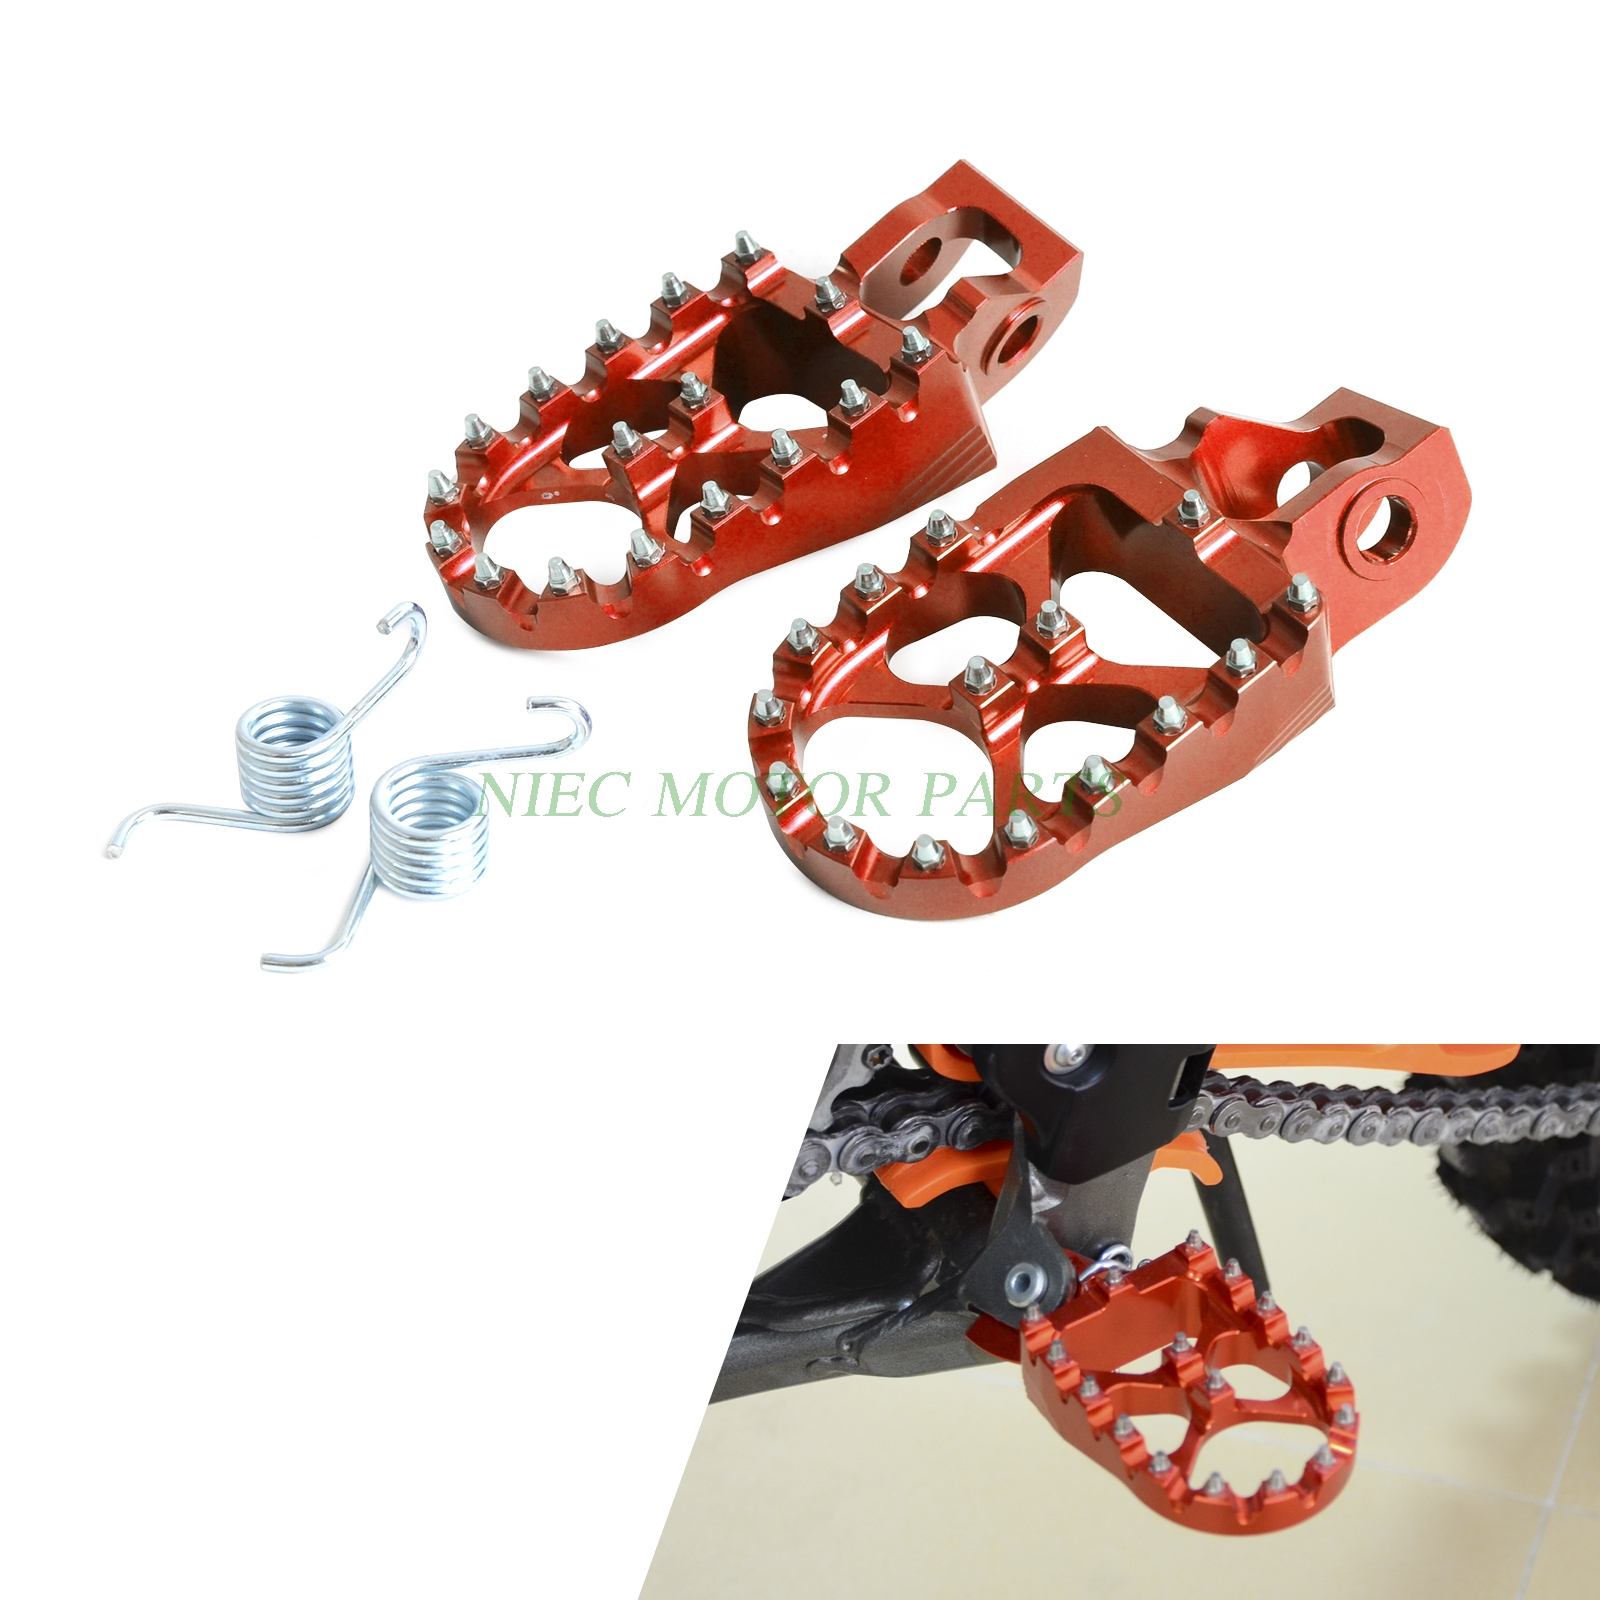 NICECNC Billet Wide CNC Foot Pegs Footrests For KTM 125 150 200 250 30 350 450 500 SX SXF EXC EXCF XC XCF XCW 2017-2018